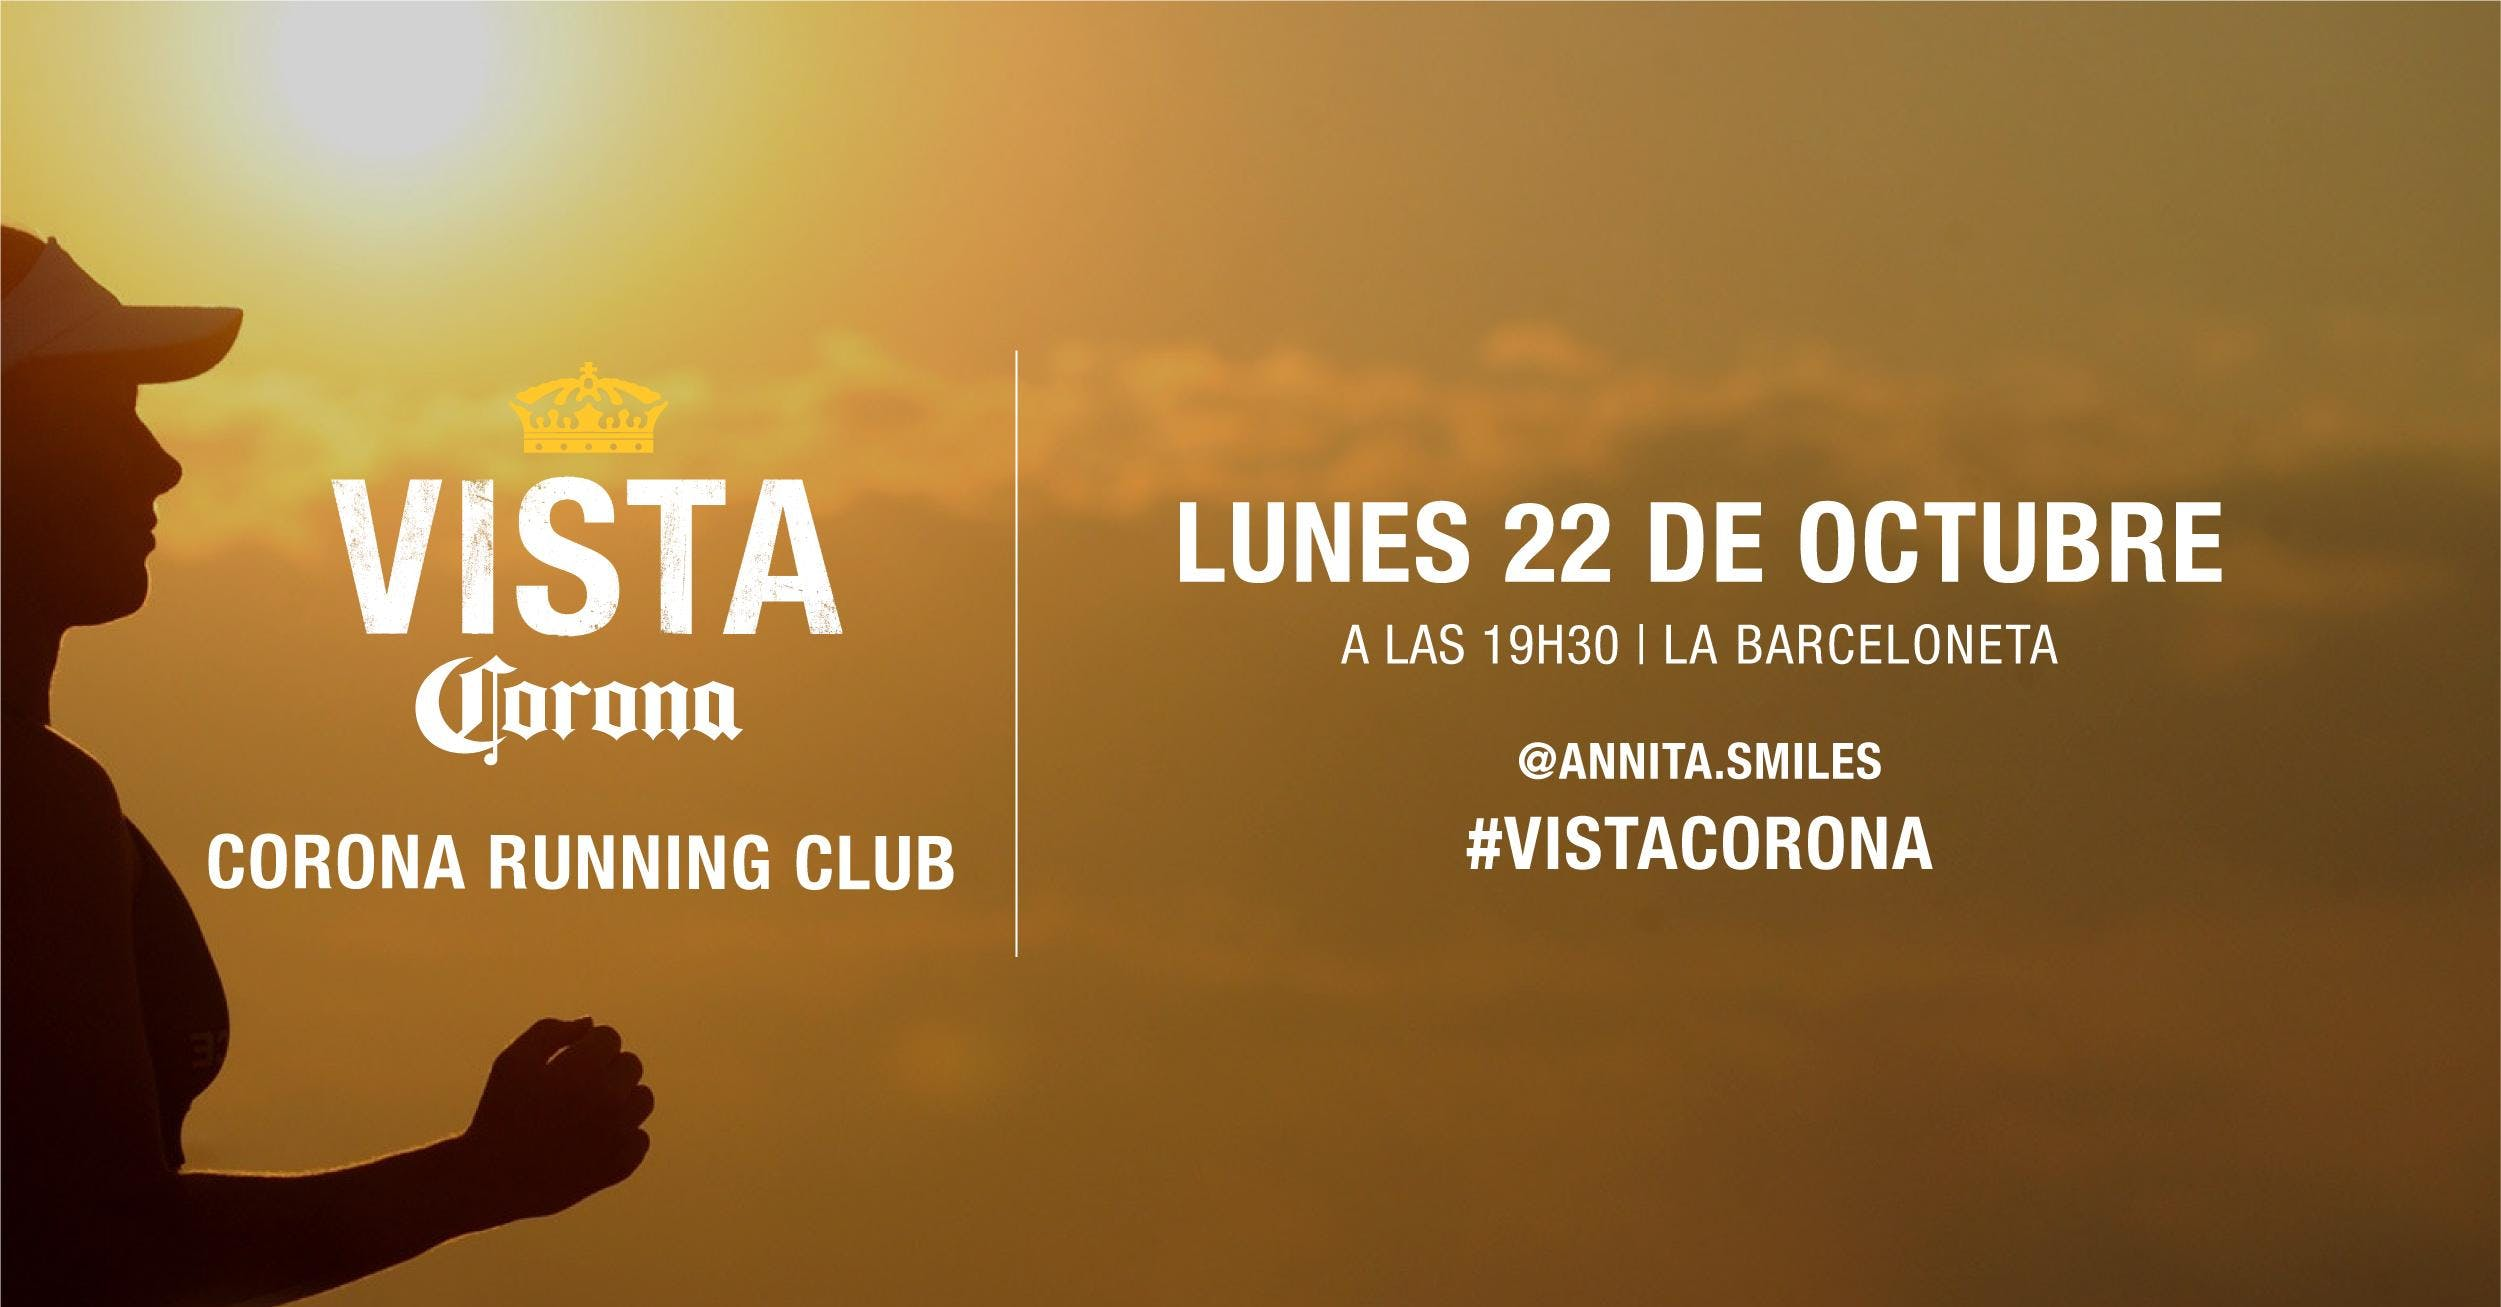 Corona Running Club - Vista Corona La Barcelo